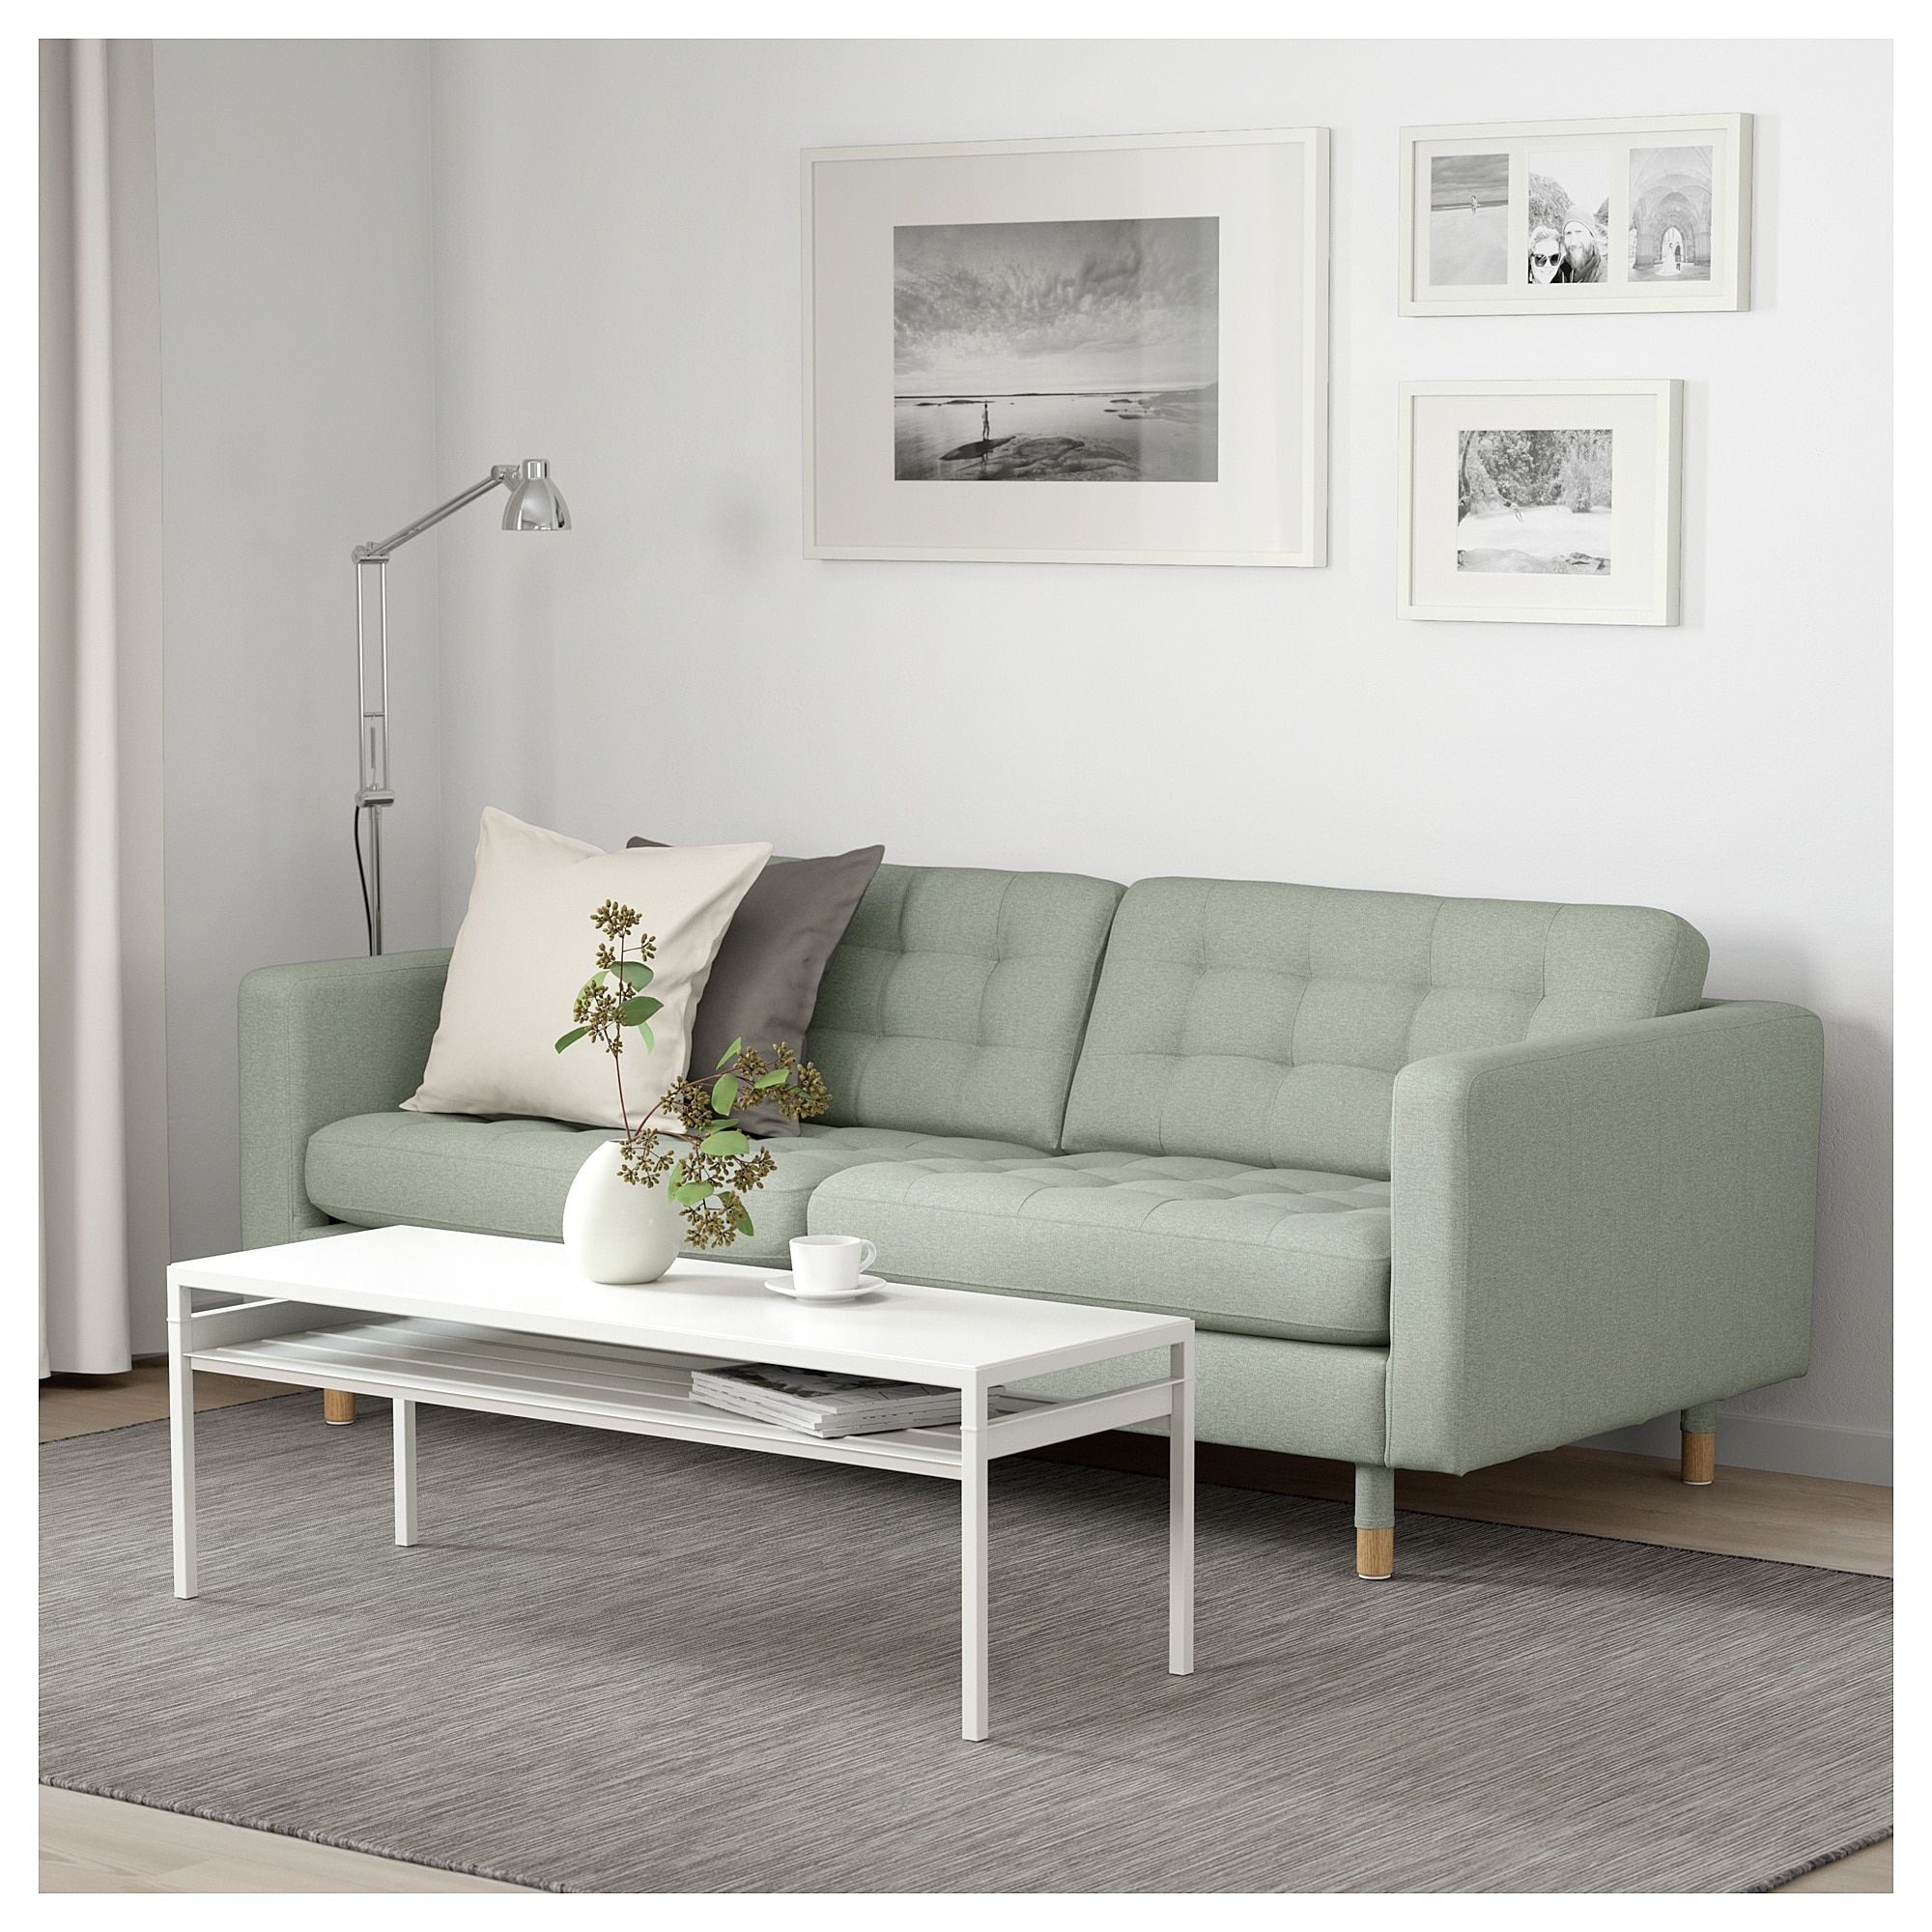 Furniture Home Furnishings Find Your Inspiration Landskrona Sofa Landskrona Ikea Landskrona